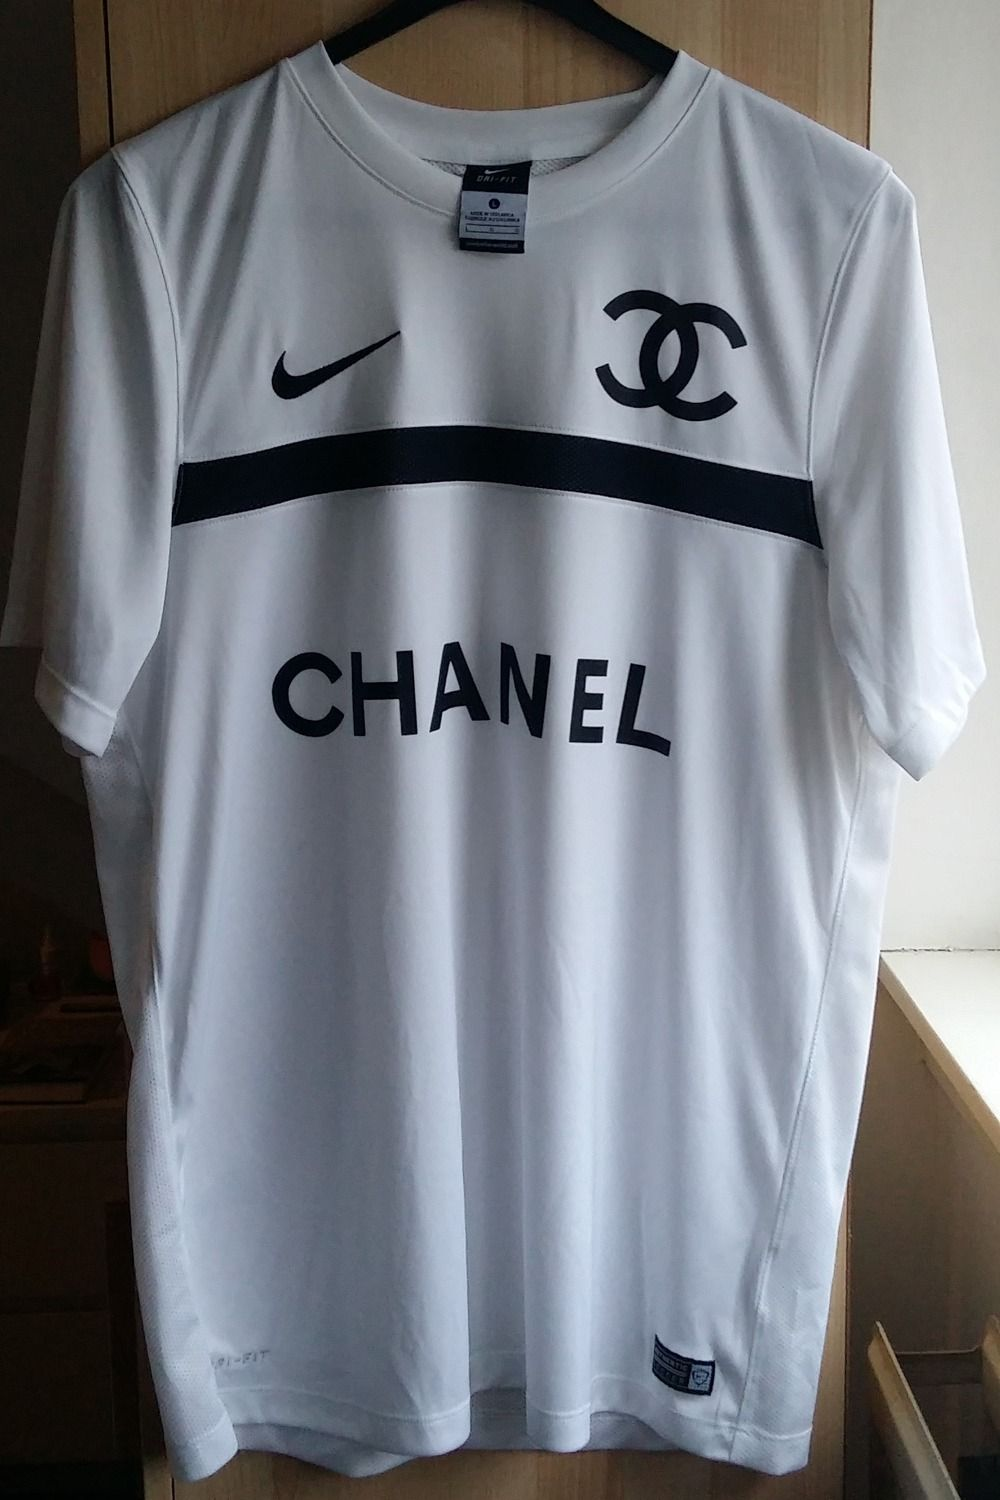 036c613e Buy: Shirts (#315719), - Nike football jersey, printed Chanel logo ...